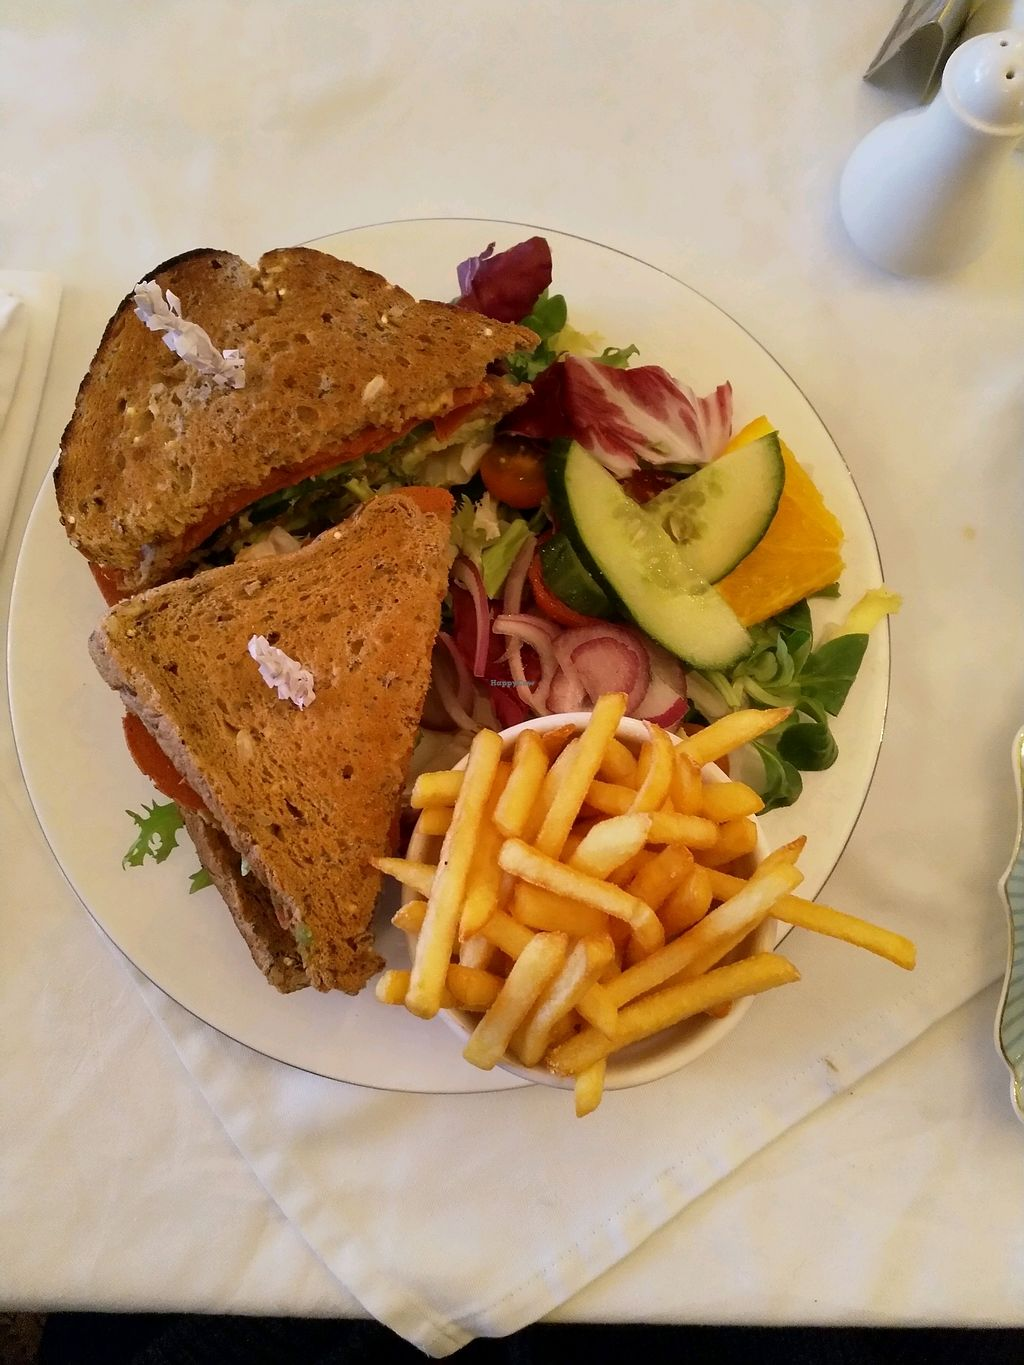 "Photo of The Westminster Tea Rooms   by <a href=""/members/profile/StarMoon"">StarMoon</a> <br/>Vegan Club Sandwich, with fresh avocado, homemade hummus and vegan bacon. Very crispy fresh fries, nom! <br/> April 5, 2018  - <a href='/contact/abuse/image/79483/380984'>Report</a>"